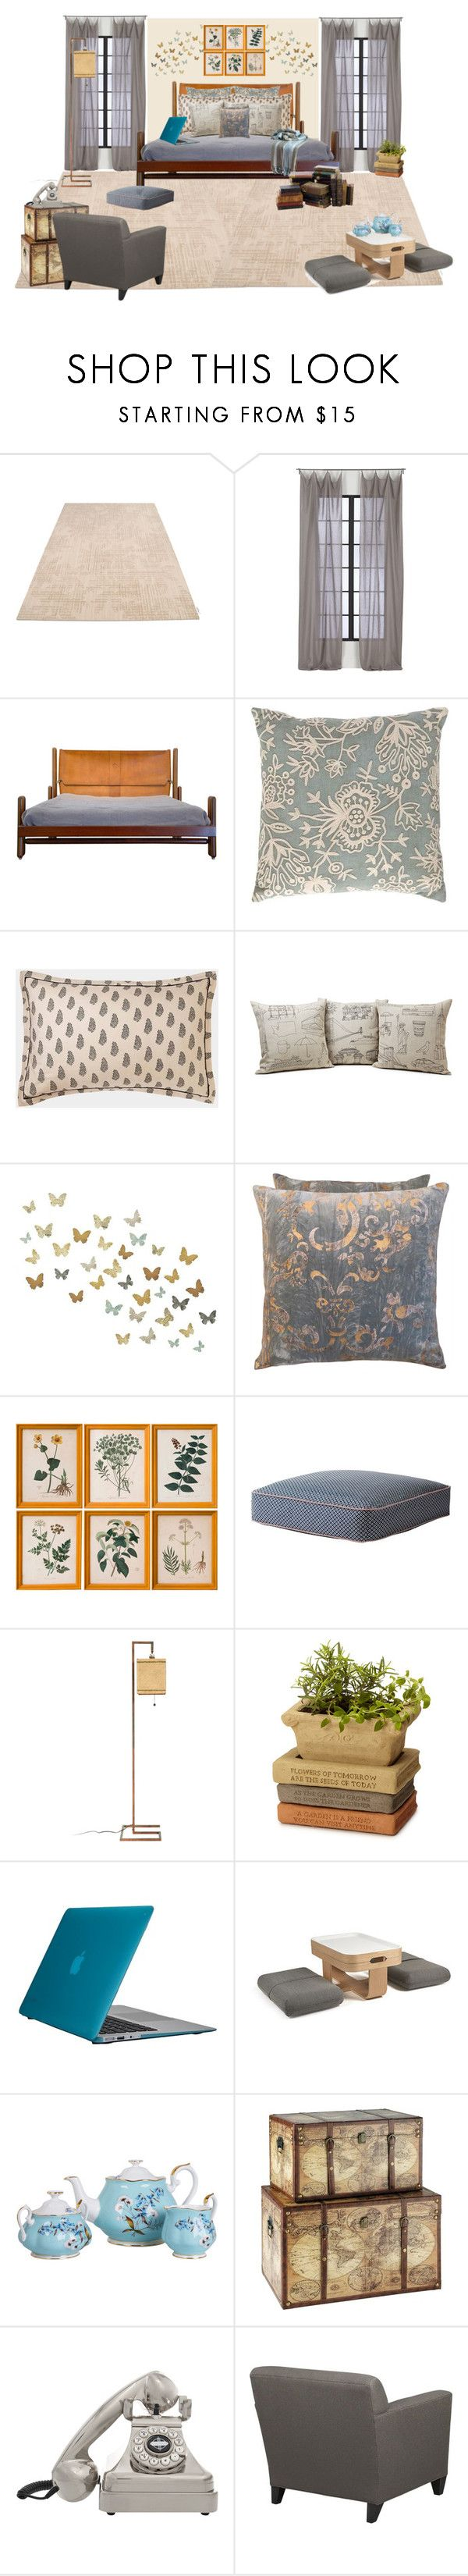 """""""Style This 1st Dibs Furniture"""" by anmarga ❤ liked on Polyvore featuring interior, interiors, interior design, home, home decor, interior decorating, Calvin Klein, CB2, Pine Cone Hill and Toast"""